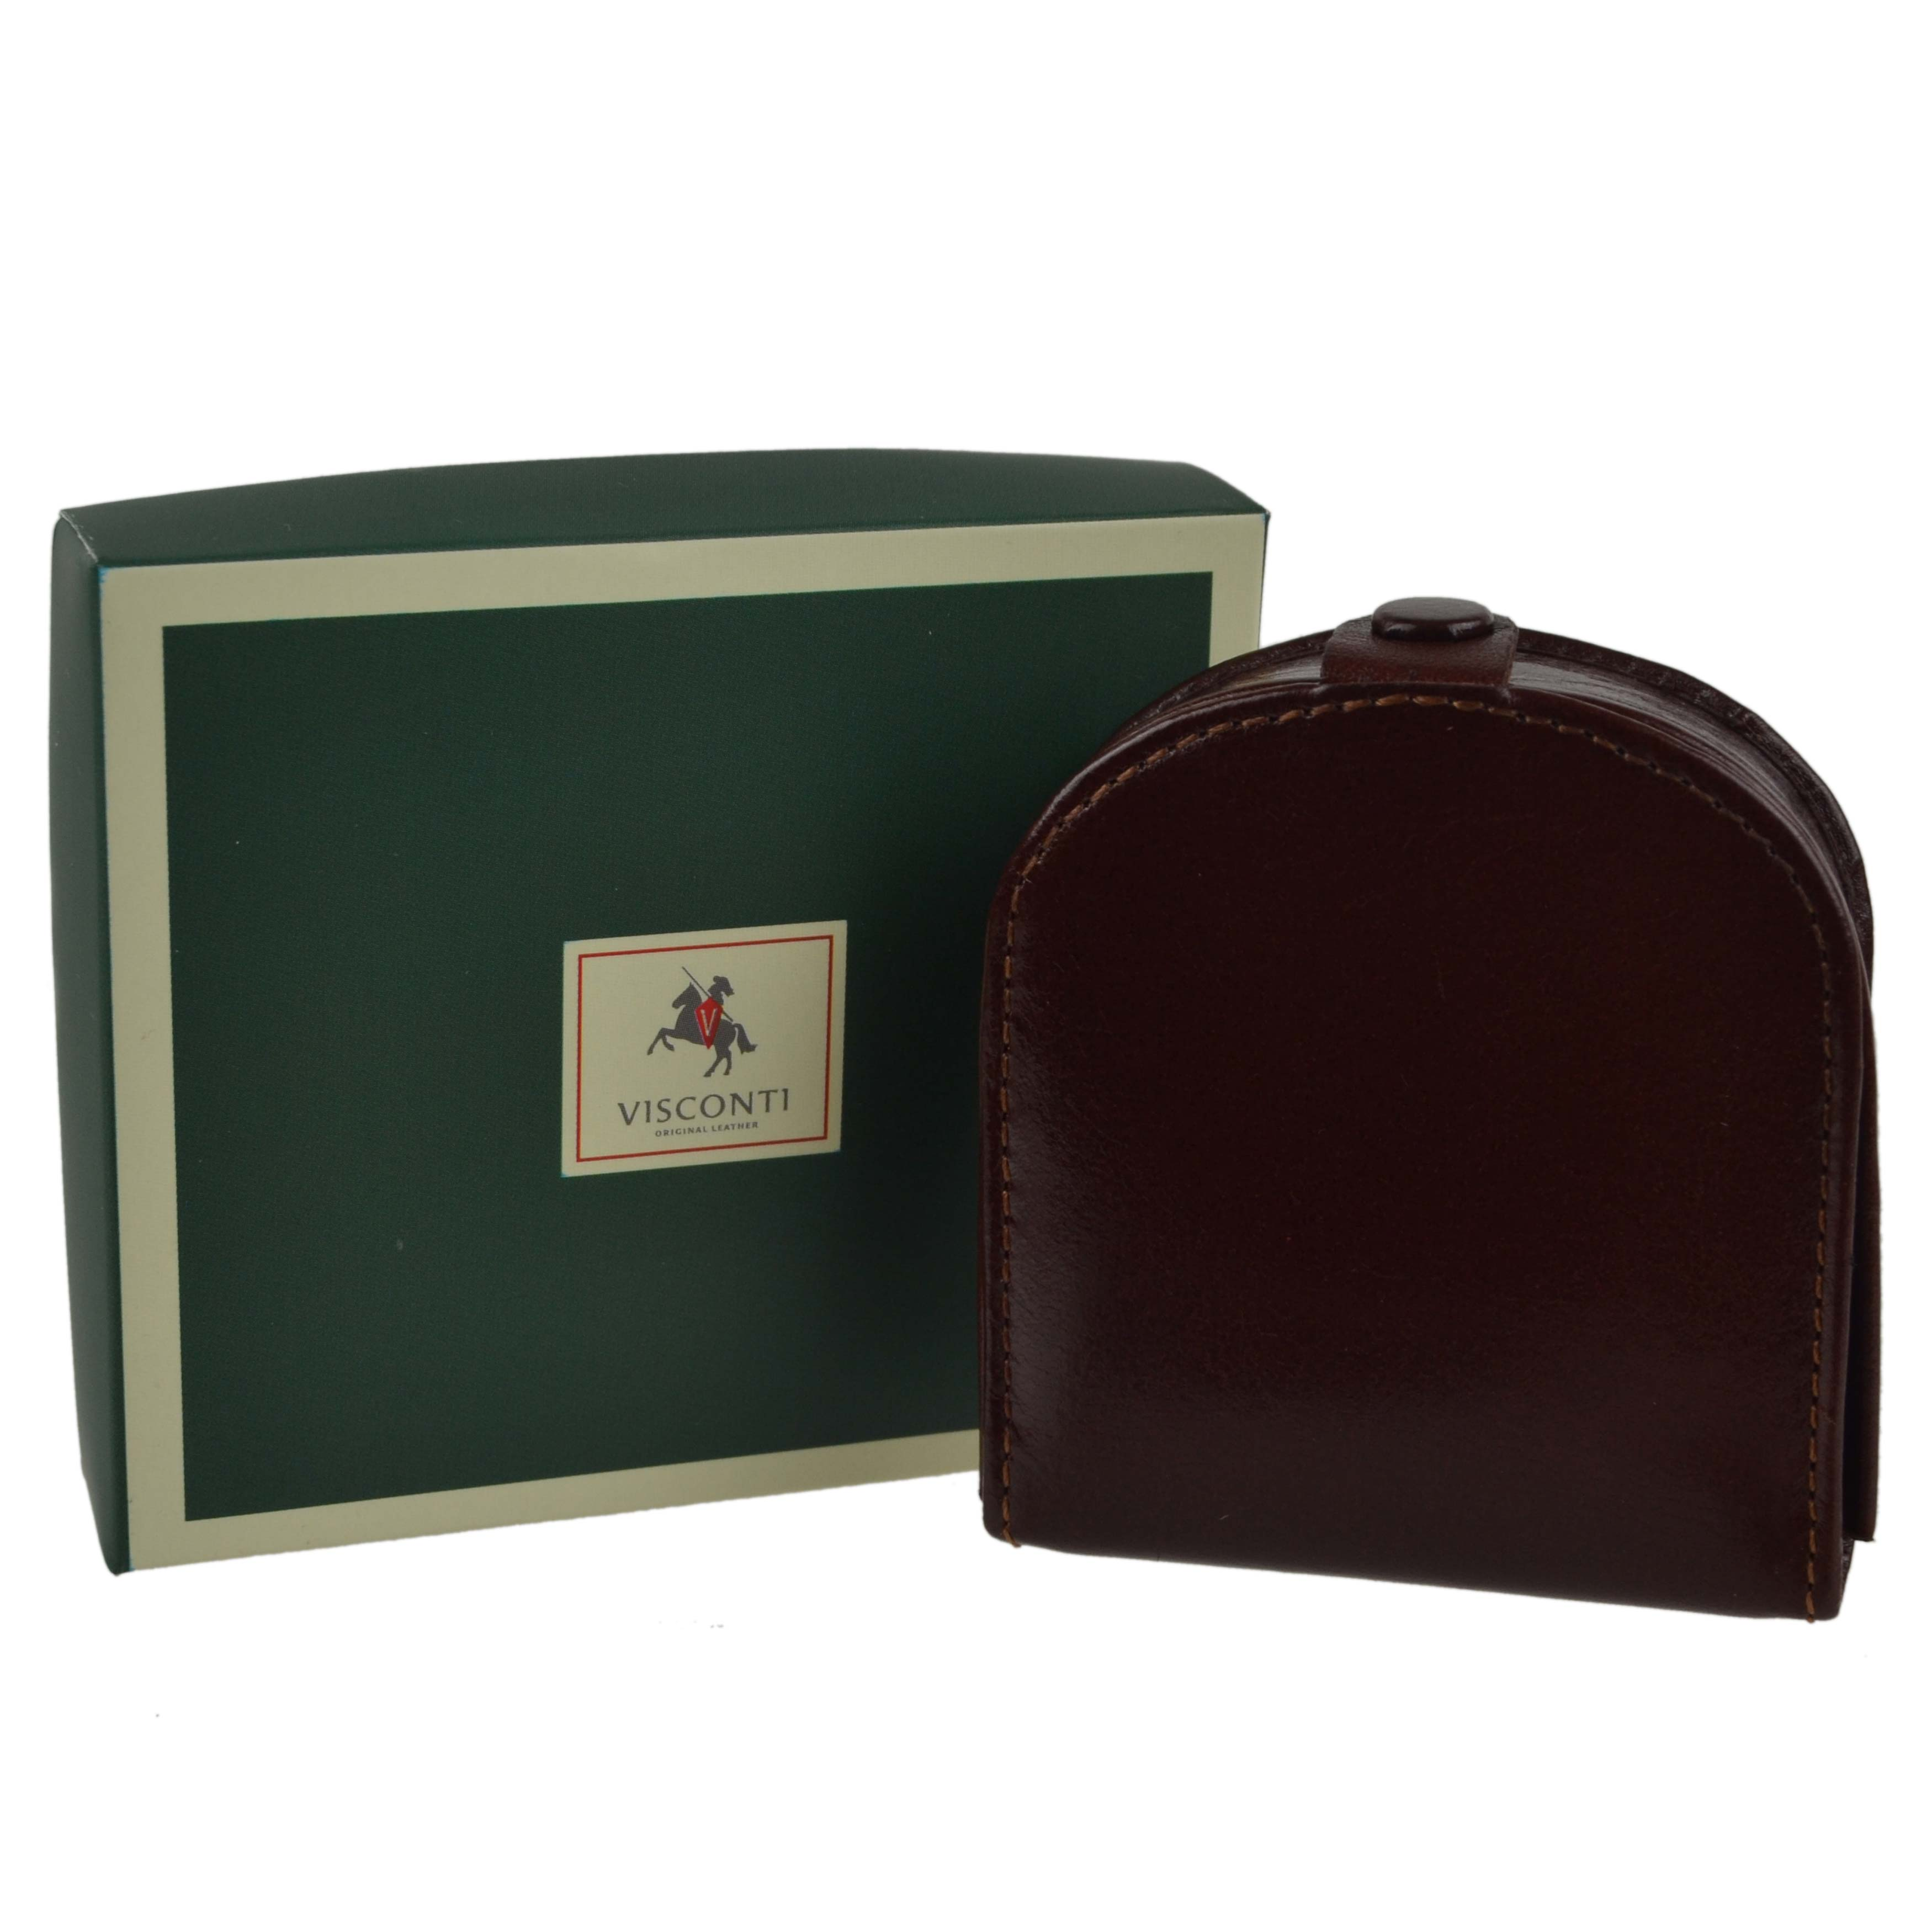 thumbnail 15 - Mens-Classic-Leather-Tabbed-Coin-Tray-by-Visconti-Monza-Collection-Gift-Boxed